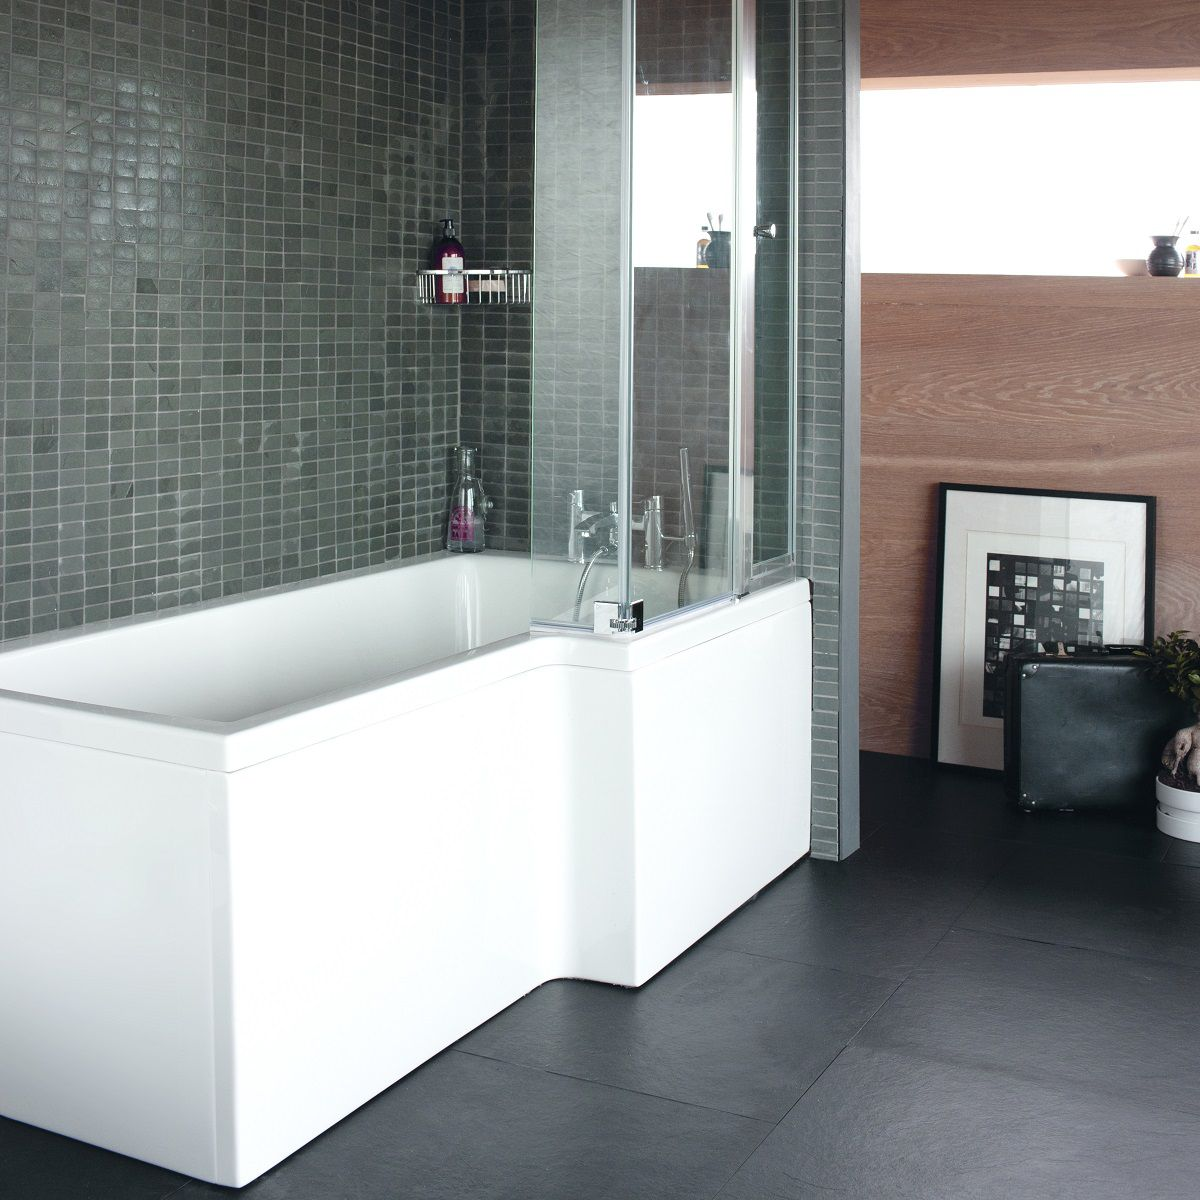 ClearGreen Ecosquare Contemporary Shower Bath : UK Bathrooms